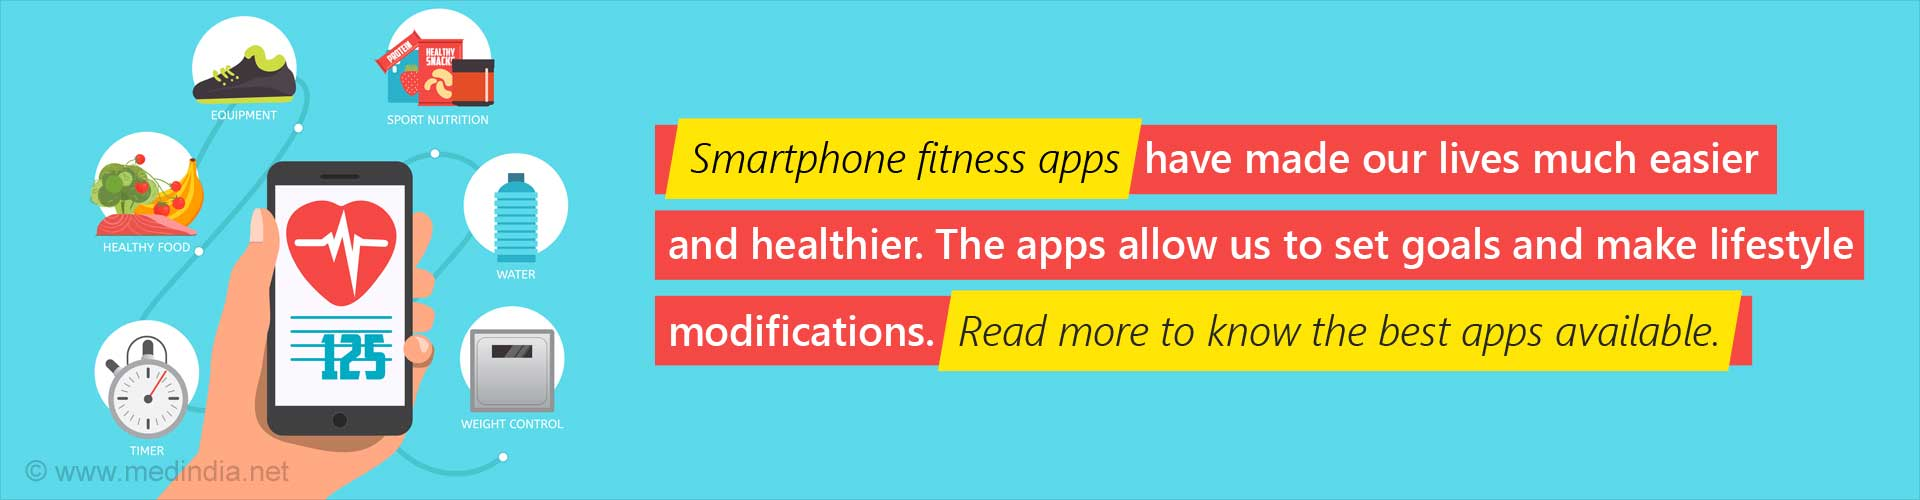 Top 7 Benefits of Using Fitness Apps